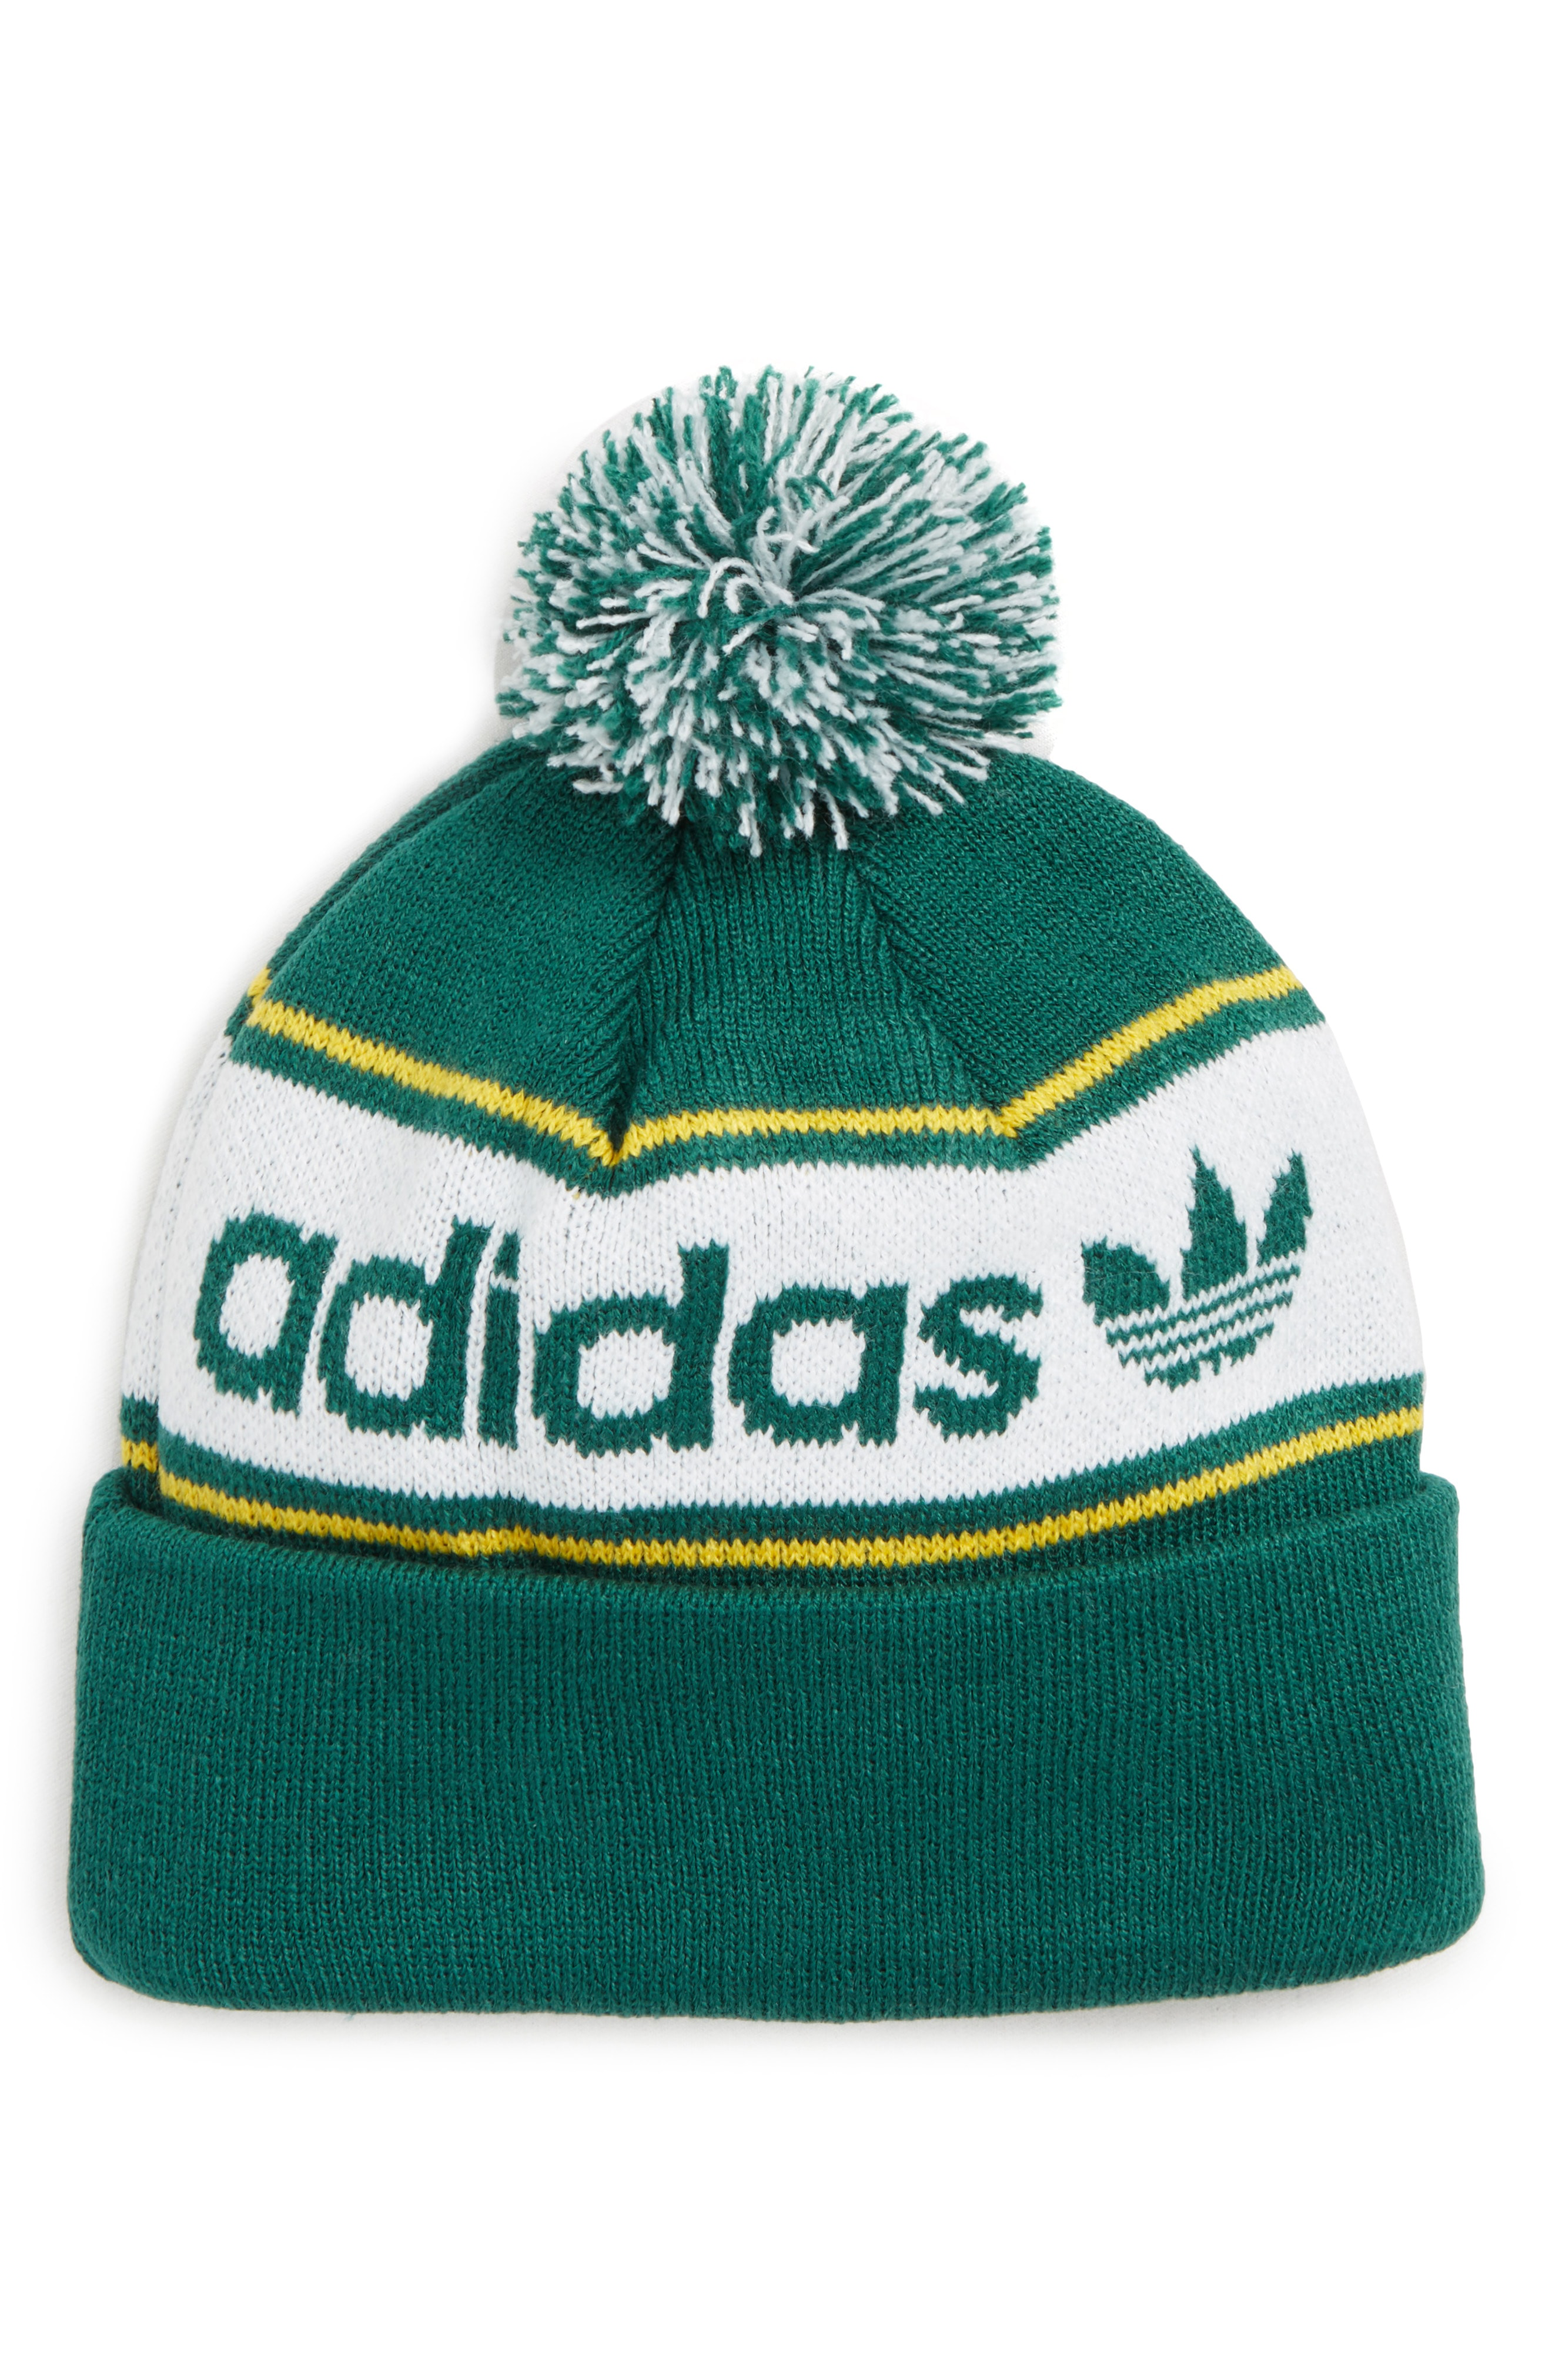 3f691b41583787 Adidas Originals Pom Beanie - Green In Noble Green/ White/ Gold ...